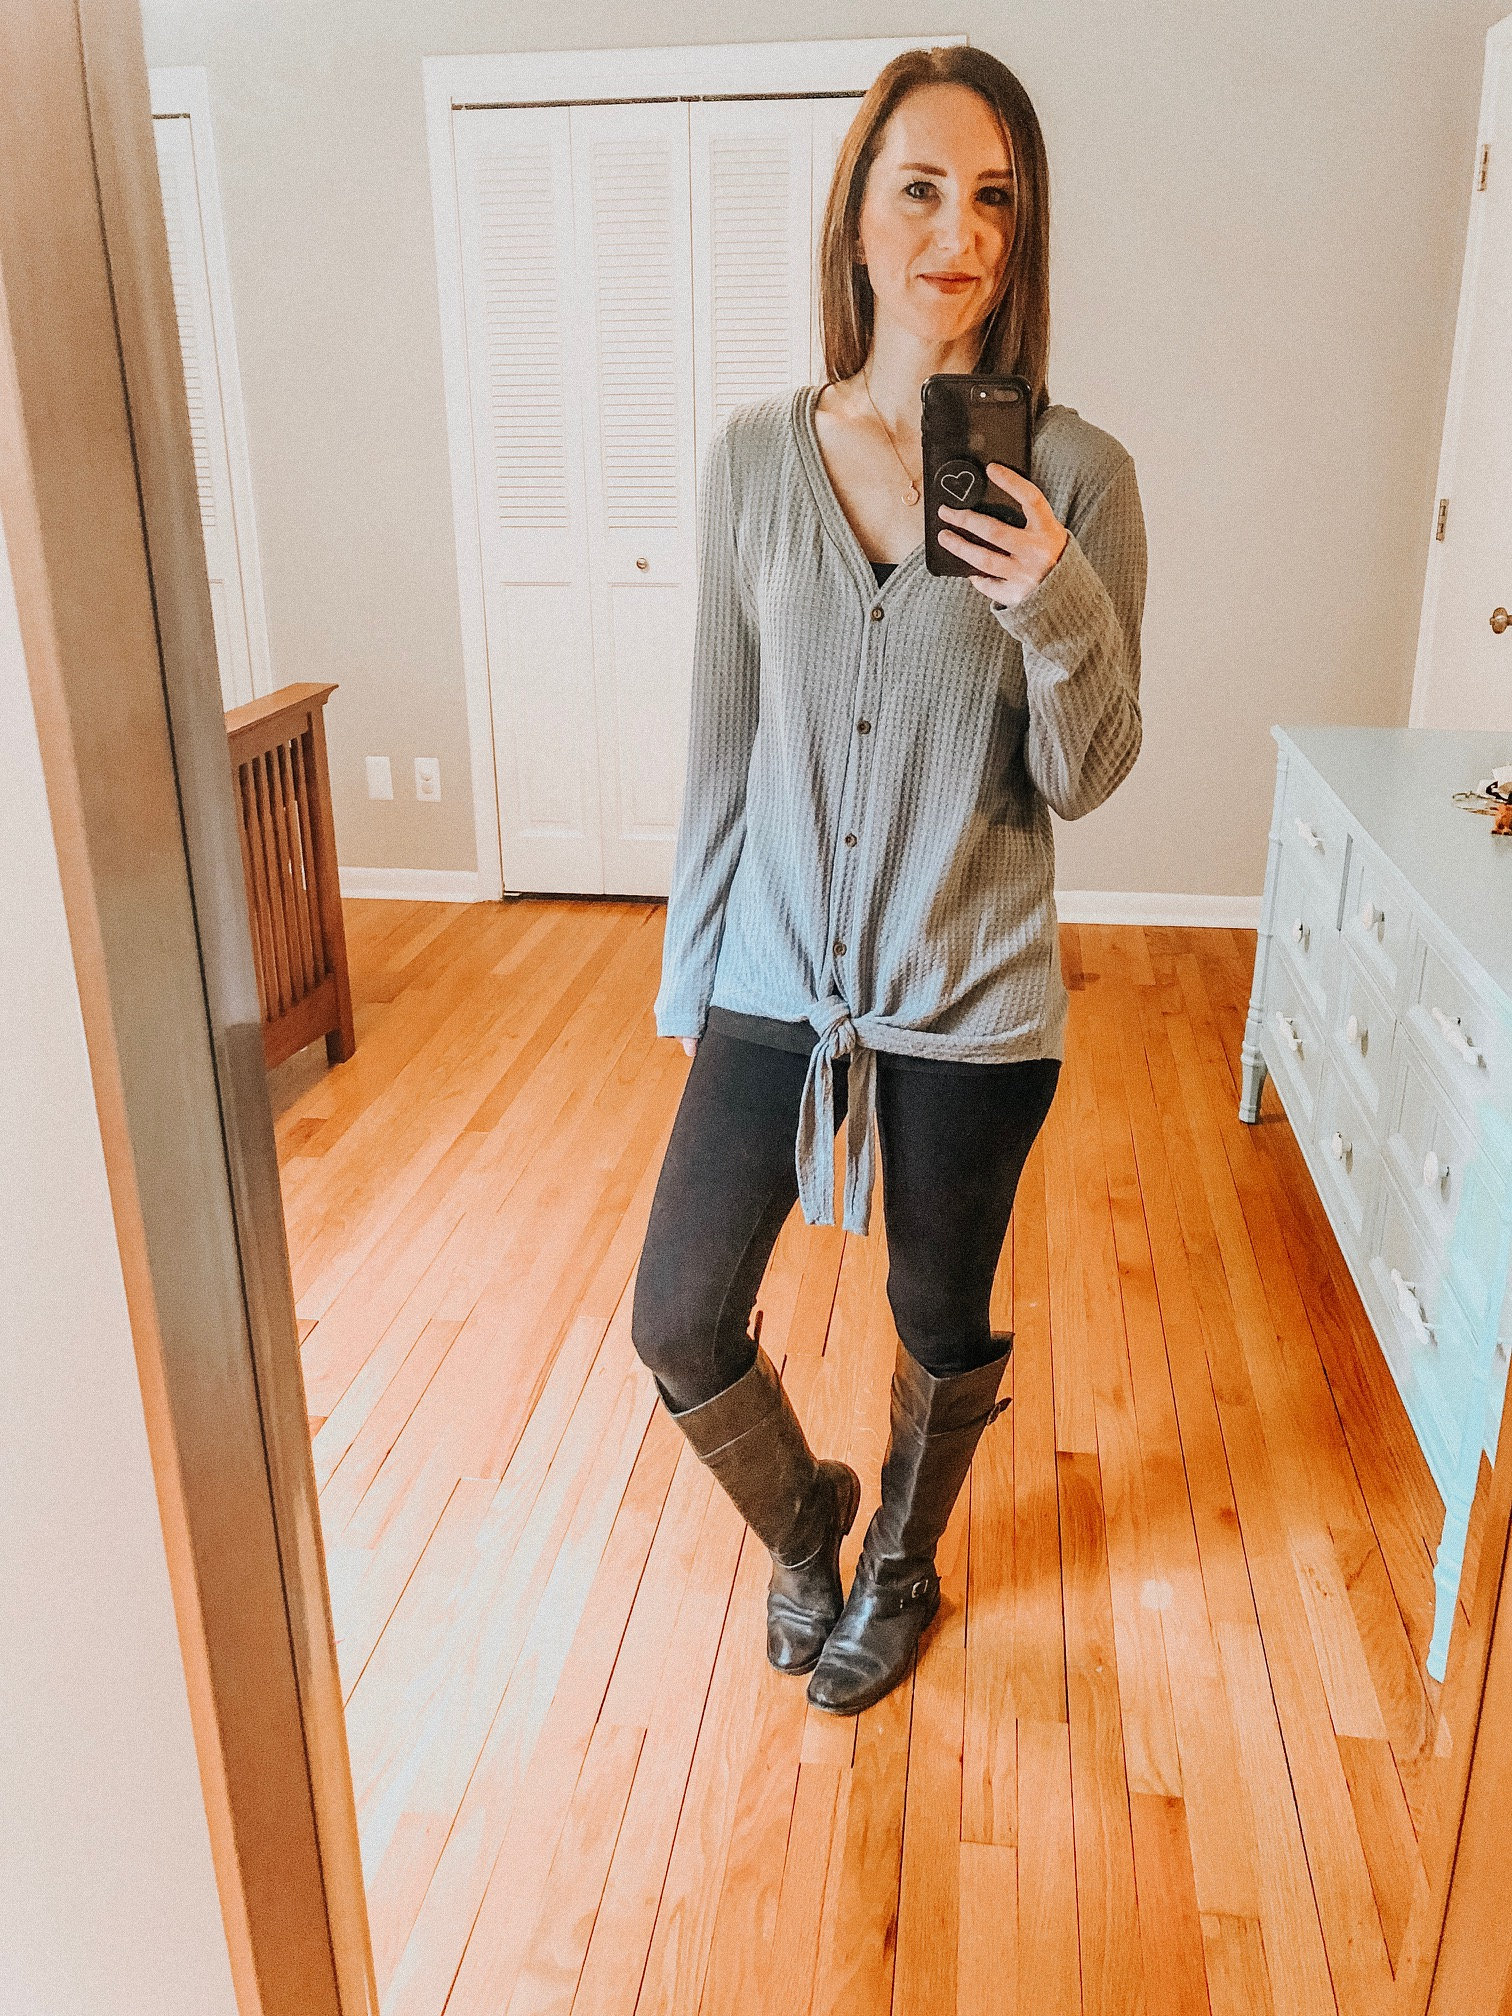 Fall Instagram Favorites | Daily Splendor Life and Style Blog | Therma, leggings and riding boots #casualstyle #casualoutfit #momstyle #everydayfashion #fallstyle #fallneutrals